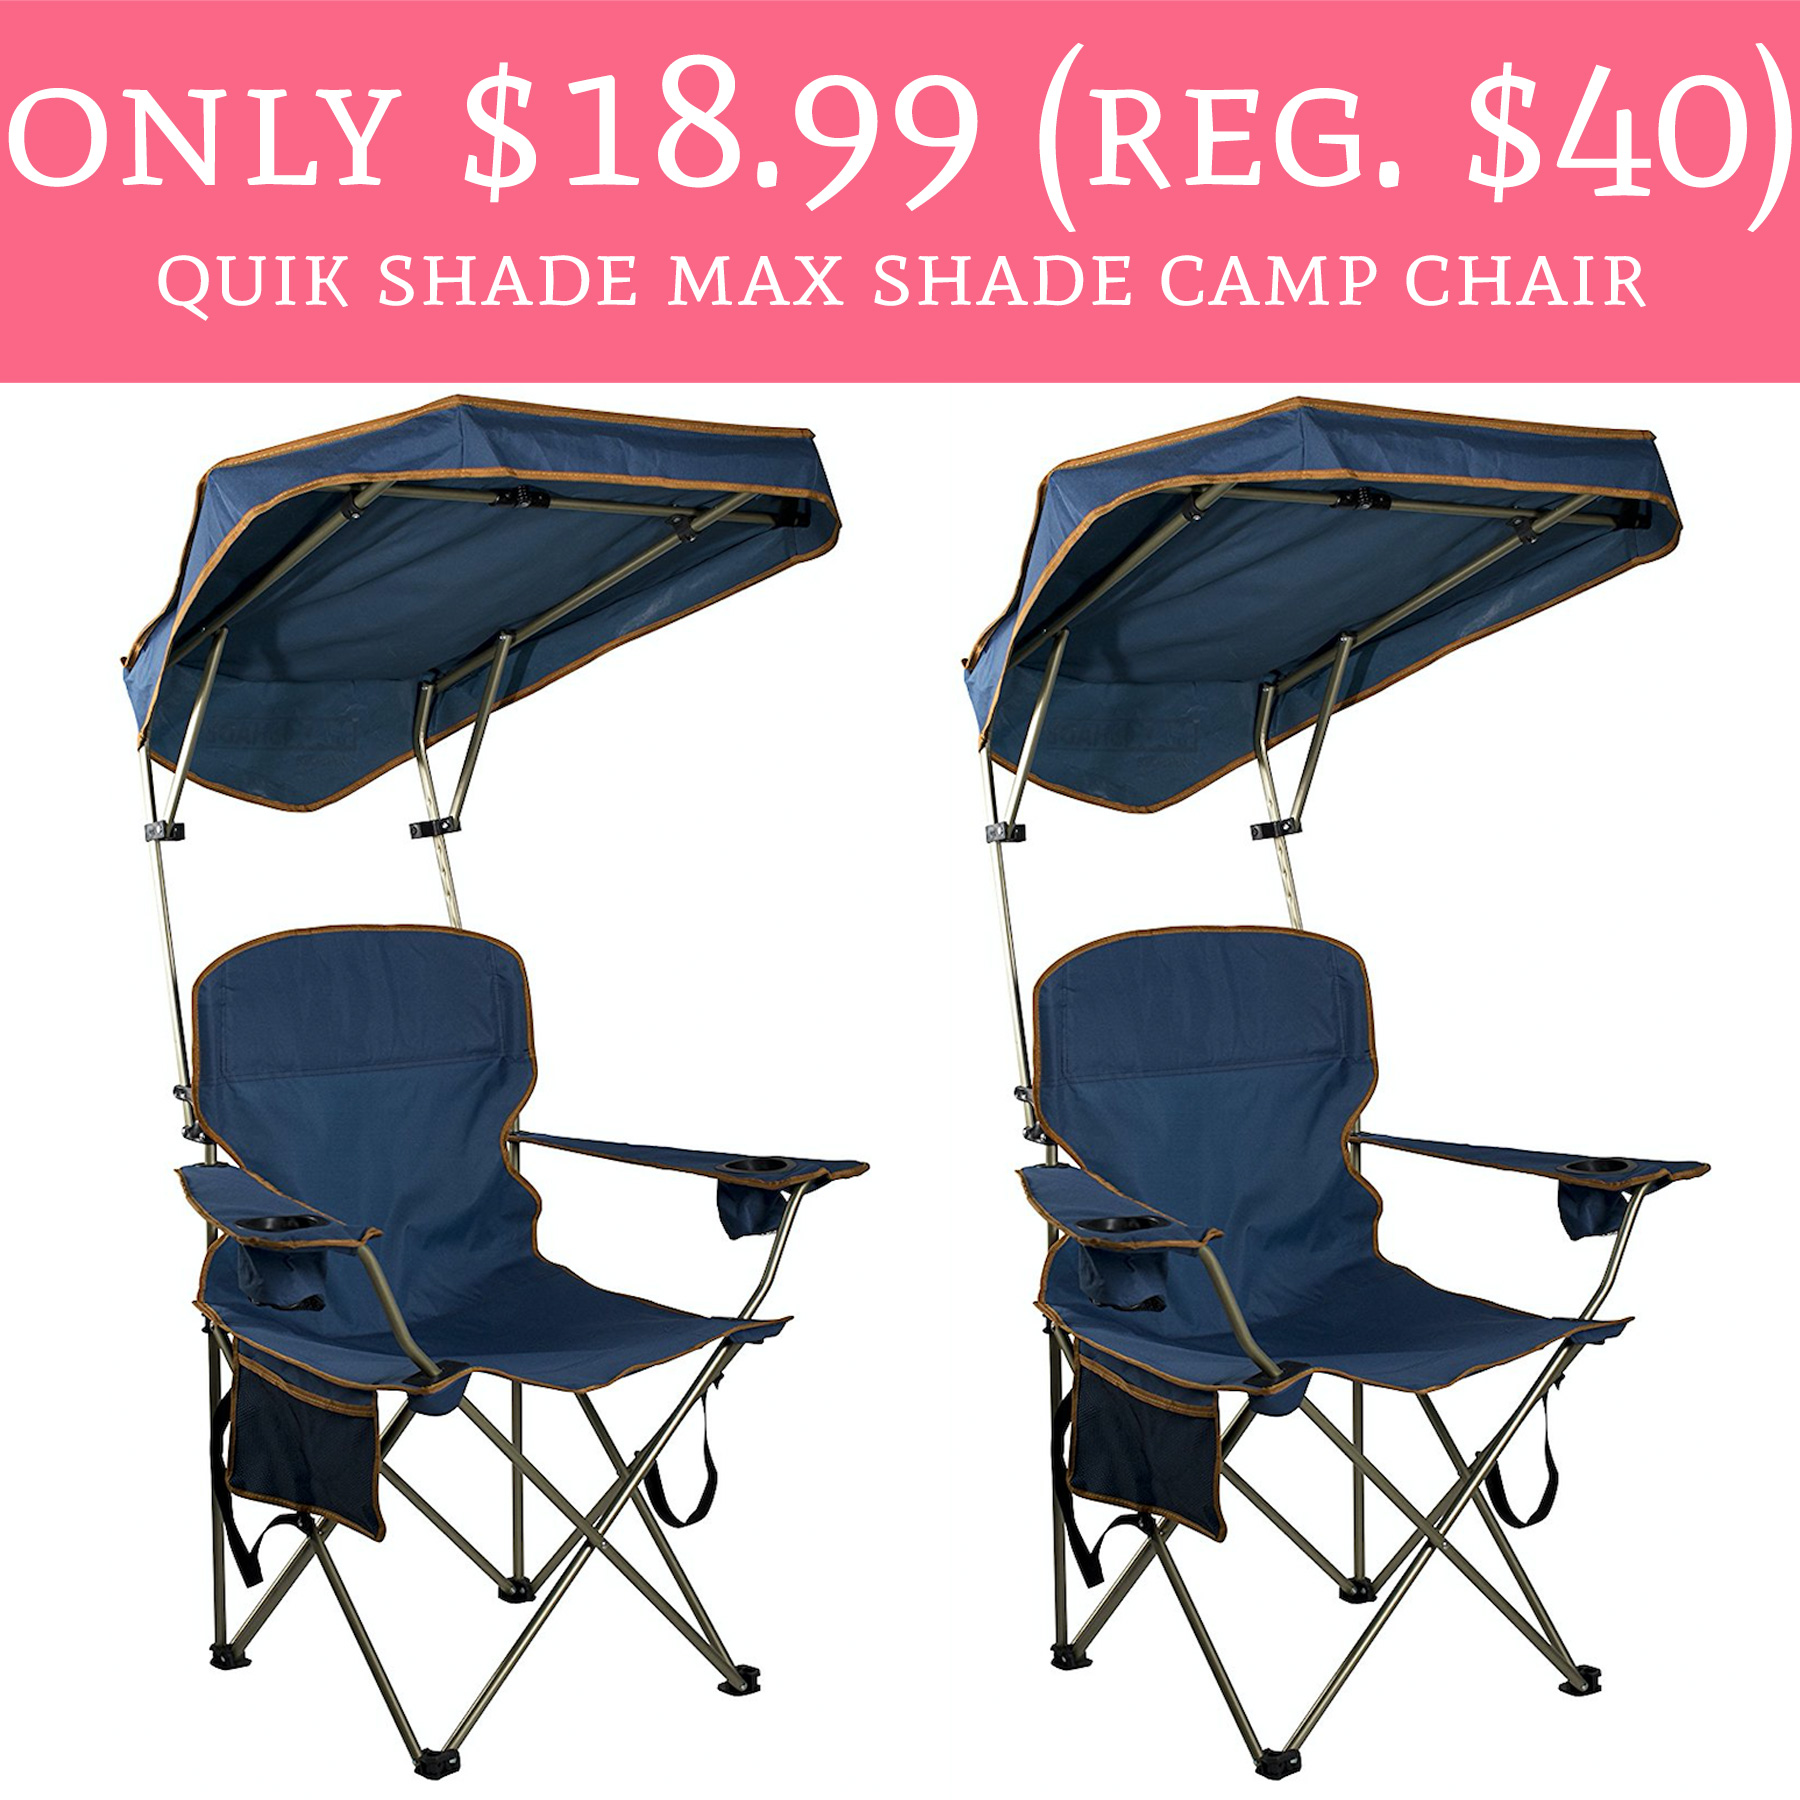 quik shade chair posture ball office hot only 18 99 regular 40 max camp